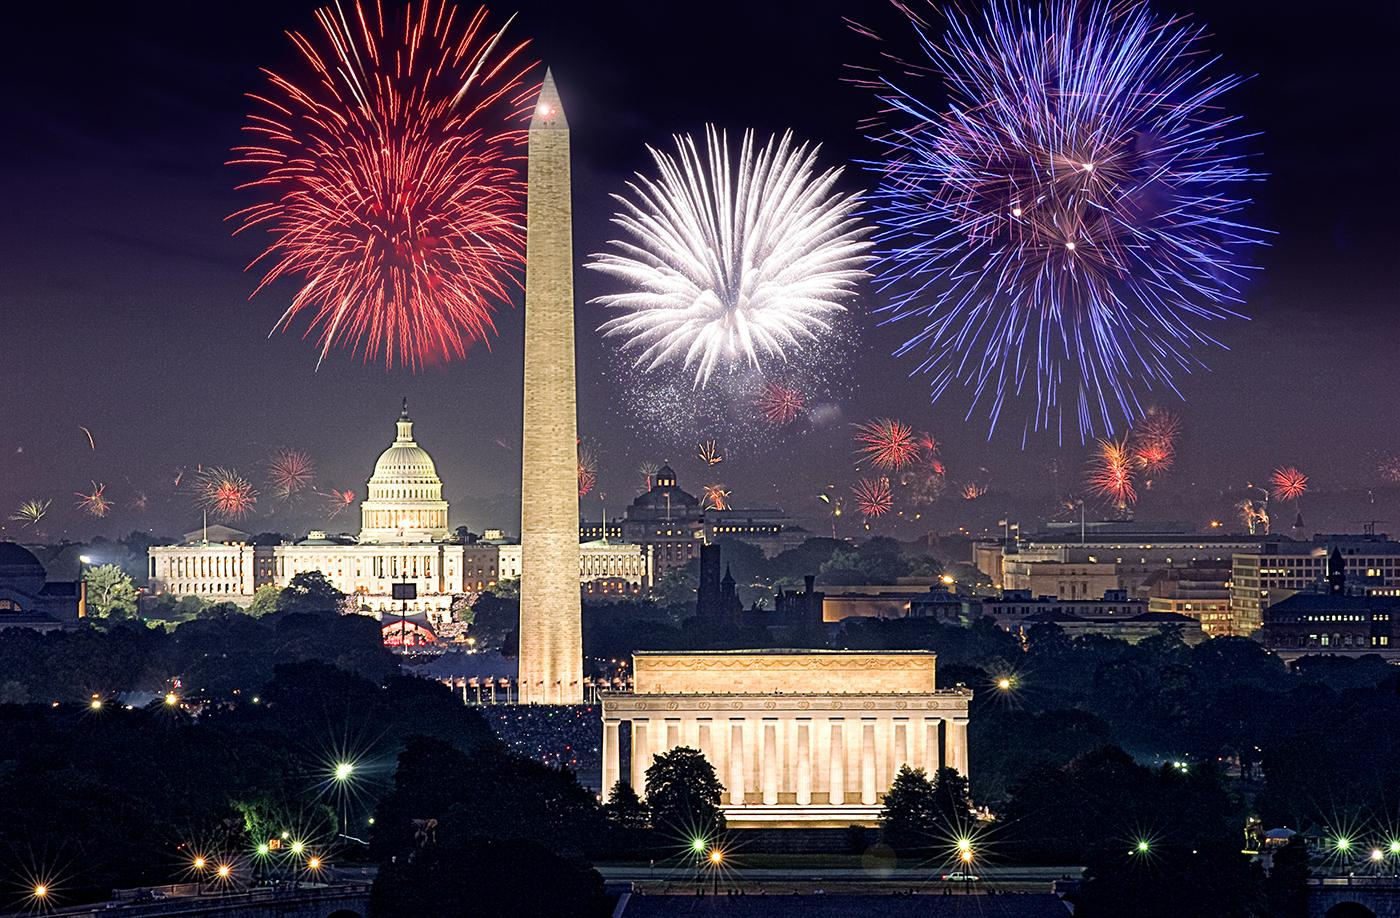 A Capitol Fourth with fireworks. Photo: Capital Concerts/Keith Lamond via Shutterstock